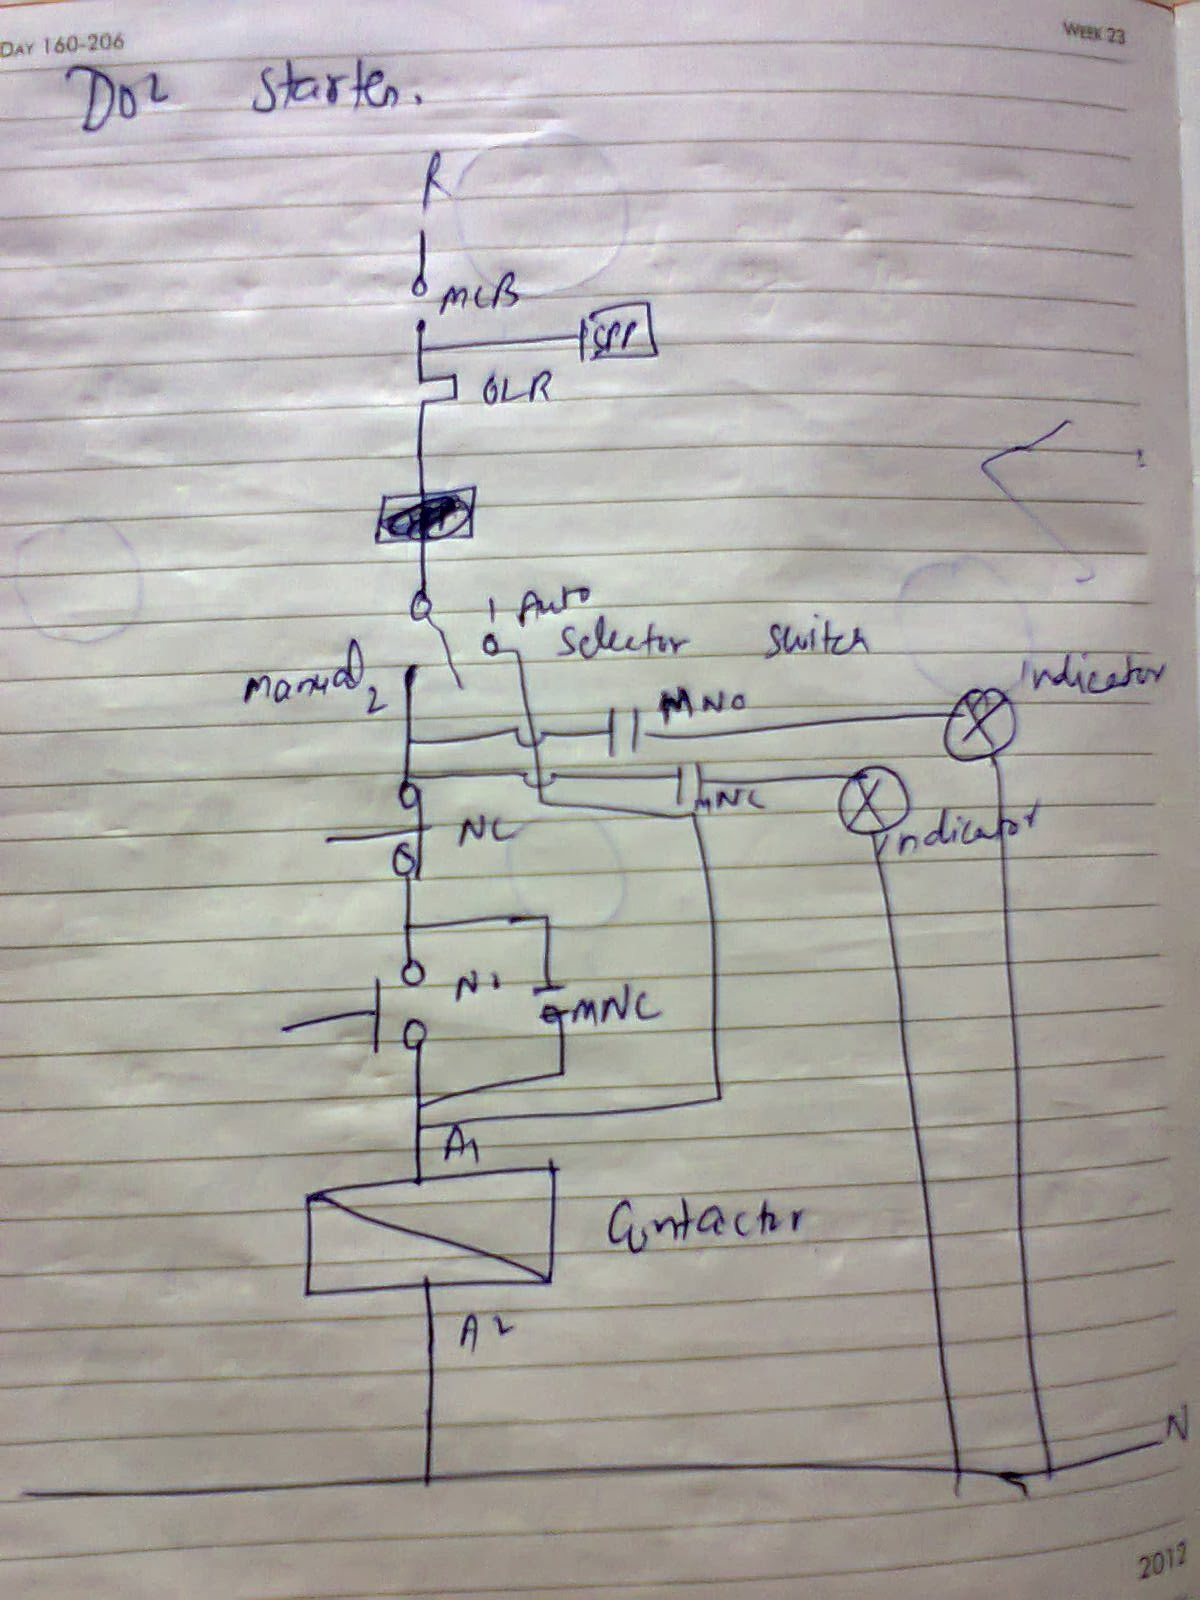 Cd Spot Welder Design Needs  ments And Suggestions moreover Dol Starter Diagram as well Hvdc Capacitor Market 175421495 furthermore Regulated Power Supply Lm317 also Sony Xperia M2 Aqua Not Charging Problem Repair Solution. on how to connect capacitor